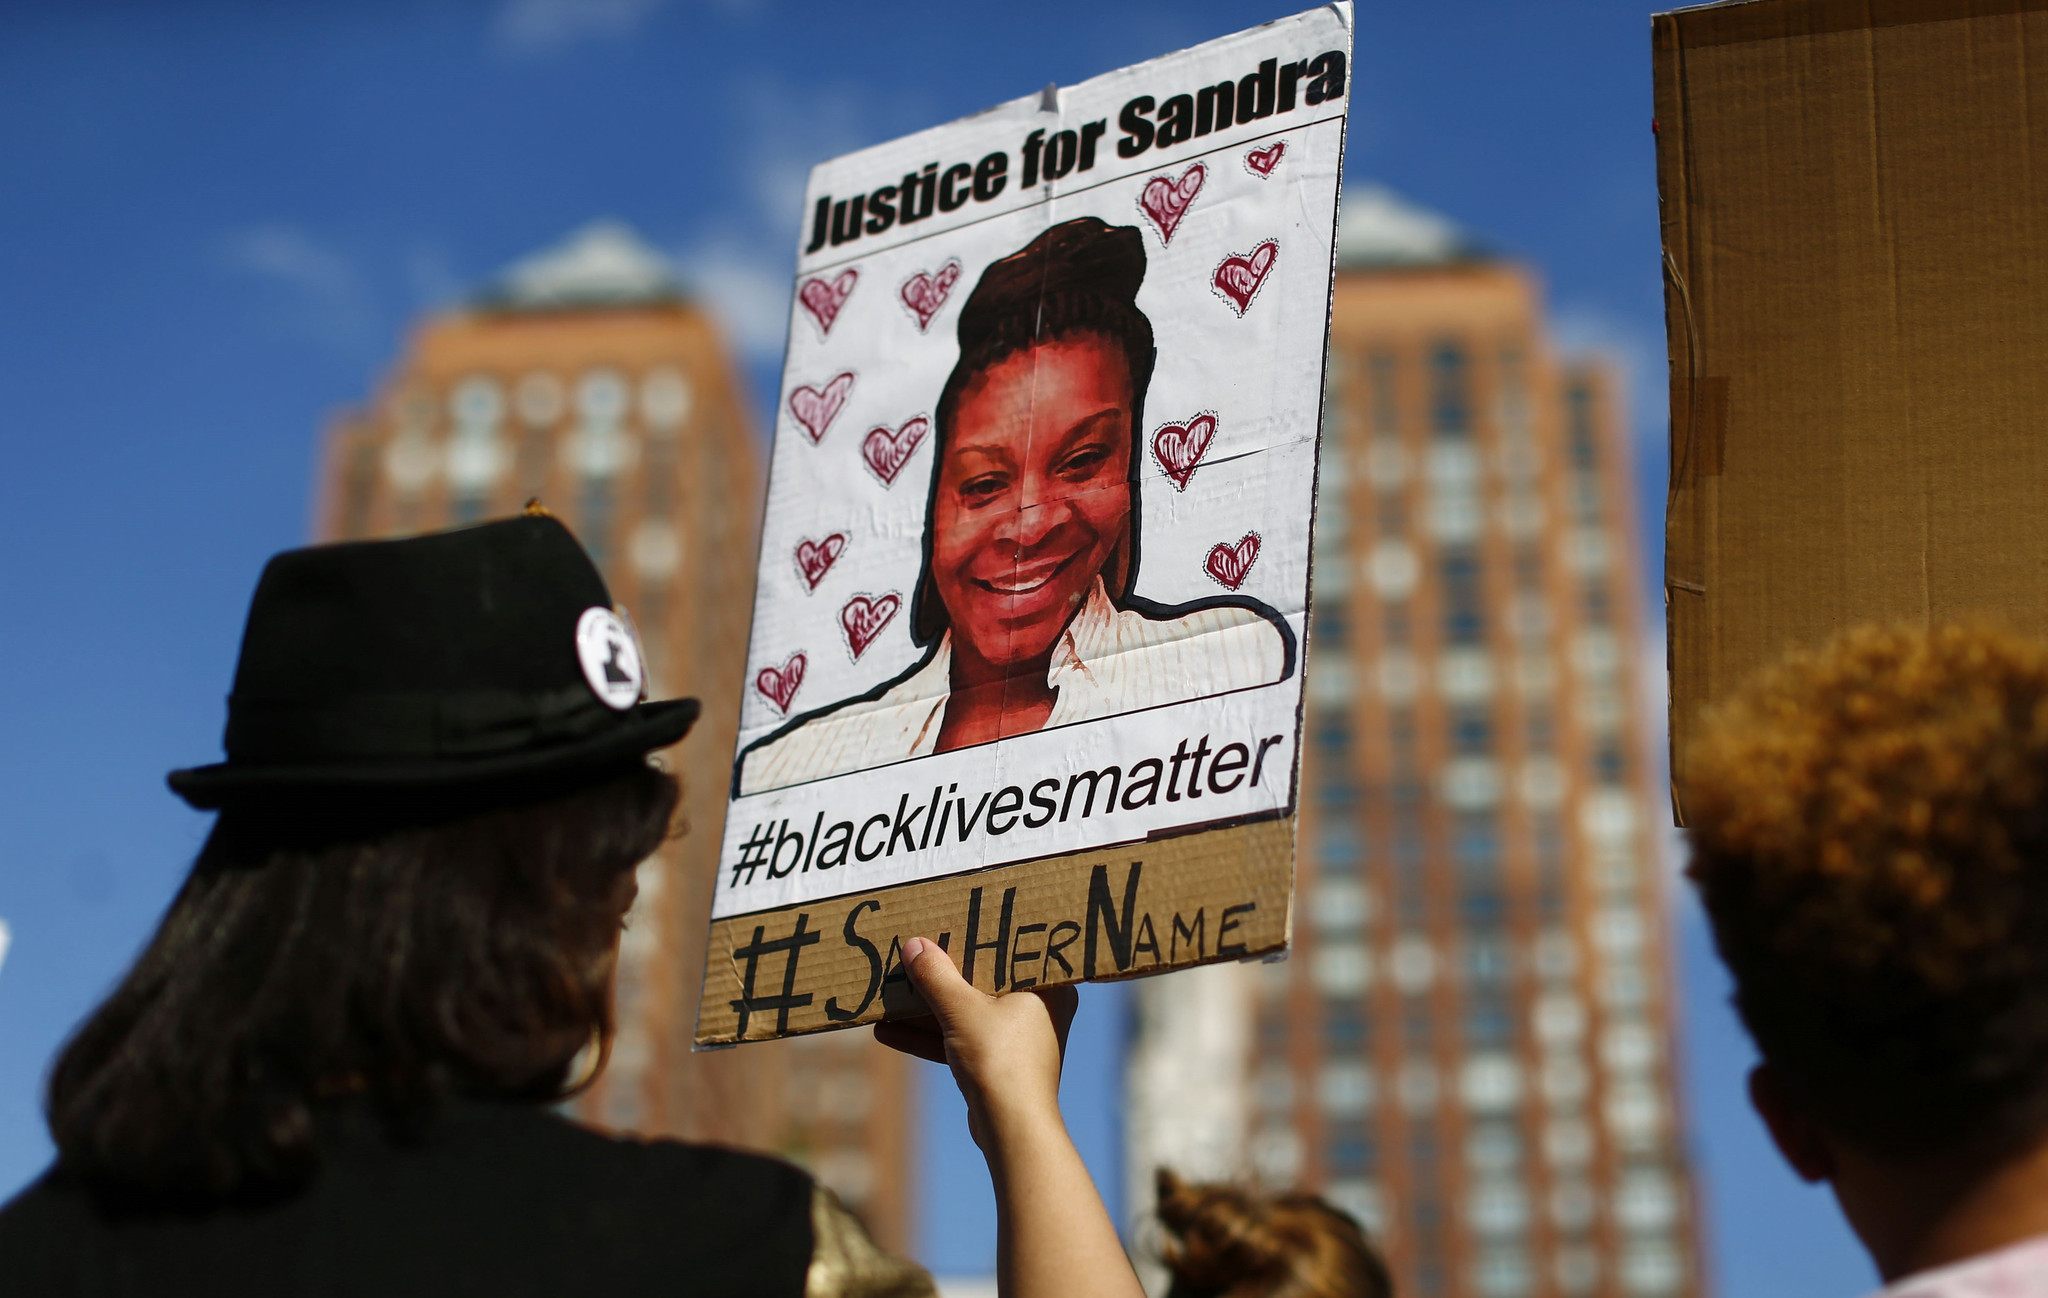 Sandra Bland: Texas records show racial breakdown of those stopped by same trooper